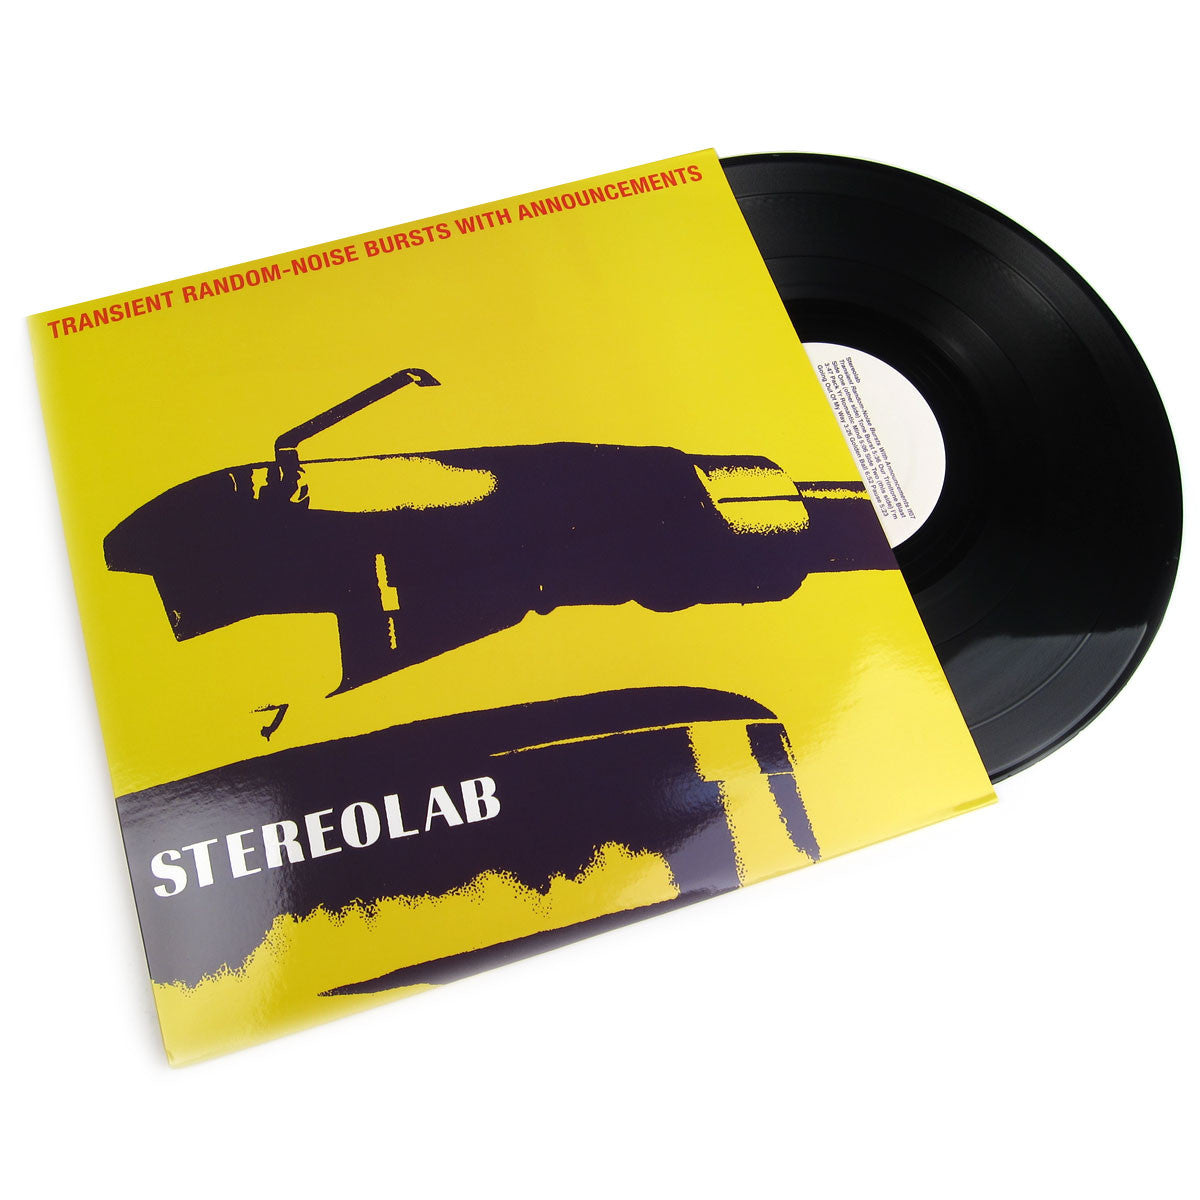 Stereolab: Transient Random-Noise Bursts with Announcement 2LP